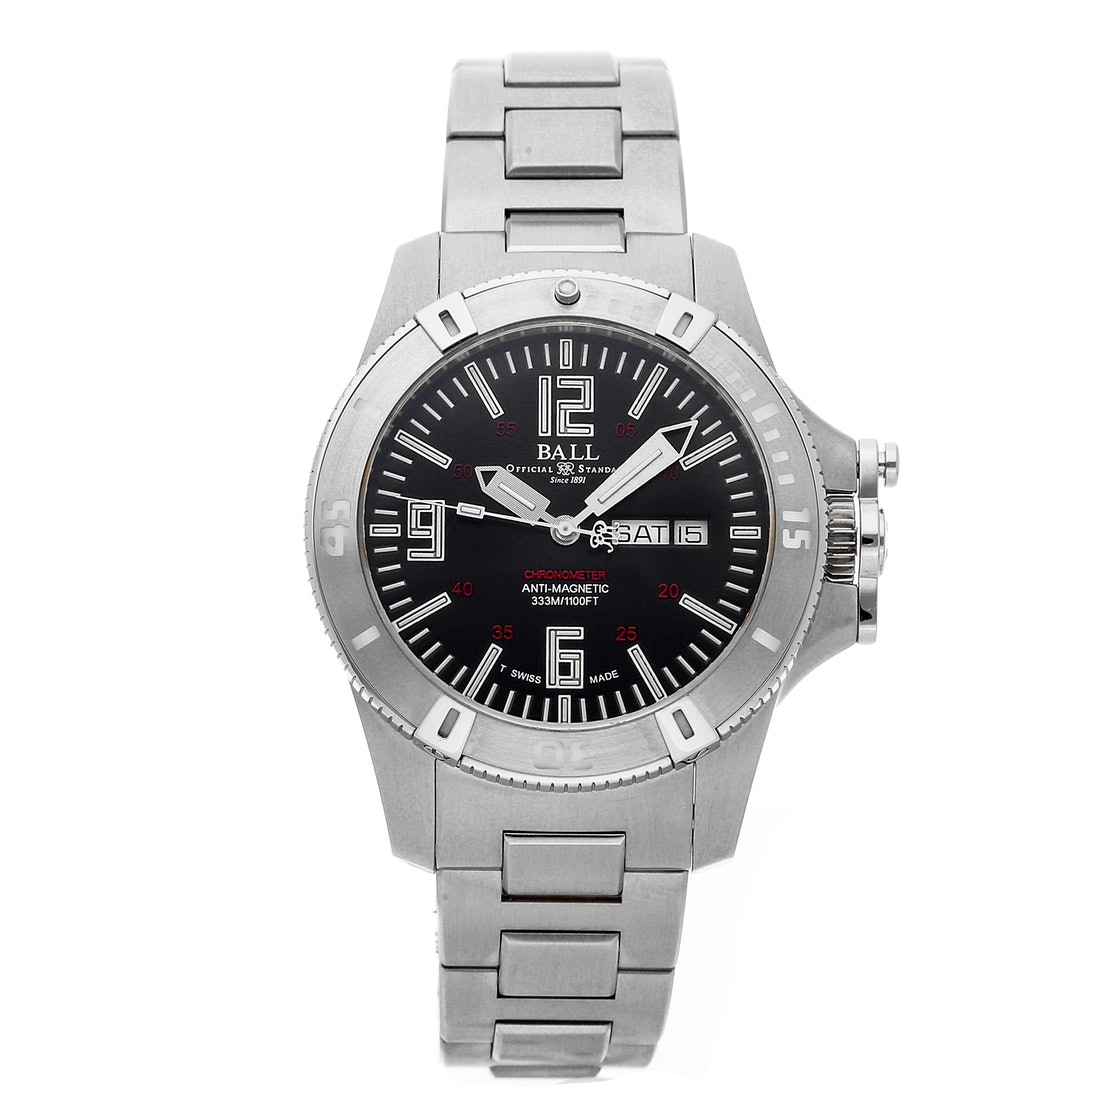 Ball Watch Company Engineer Hydrocarbon Spacemaster X Lume DM2036A-SCA-BK